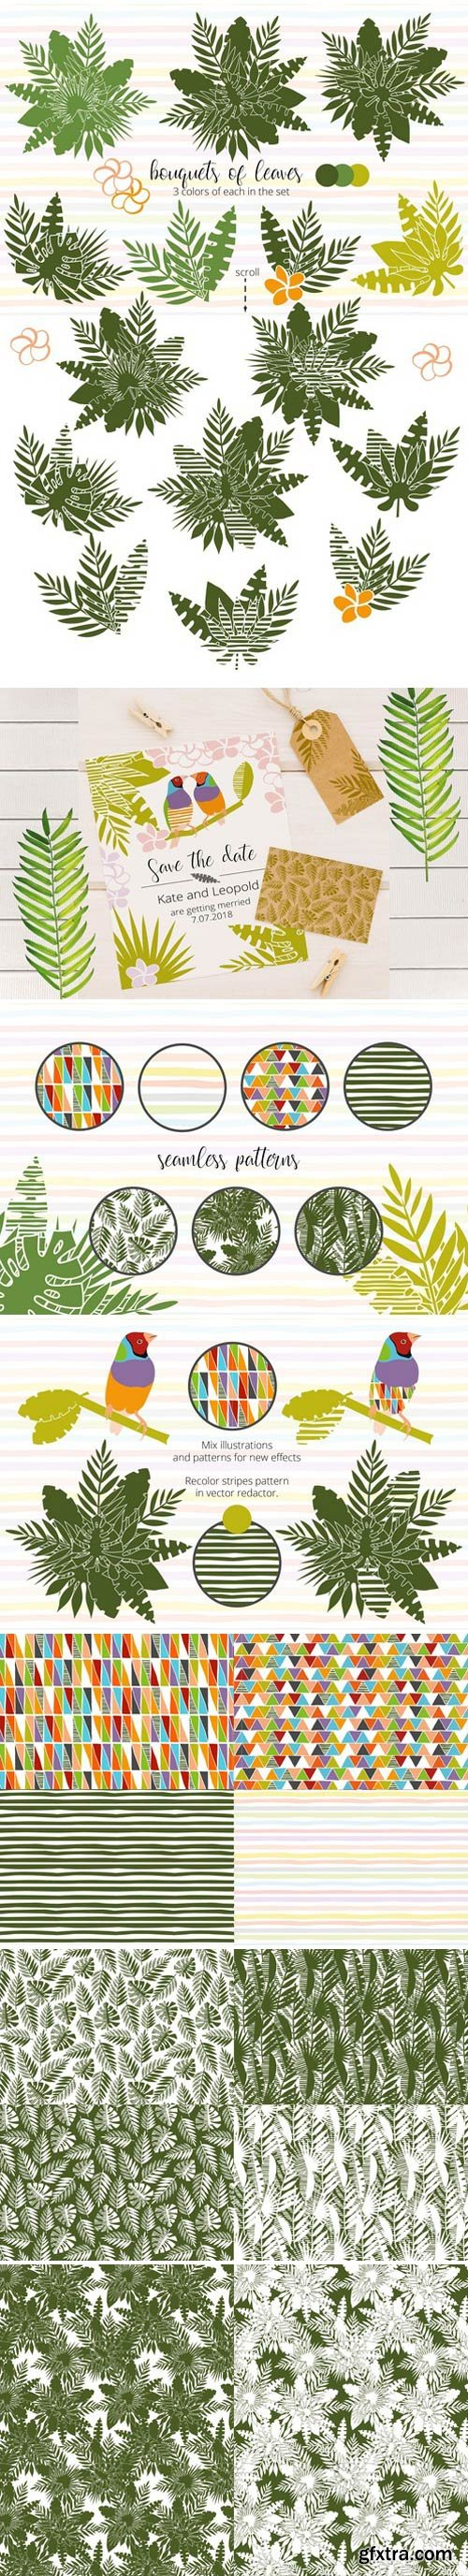 CM - Tropical dreams.Clipart and patterns 2352330